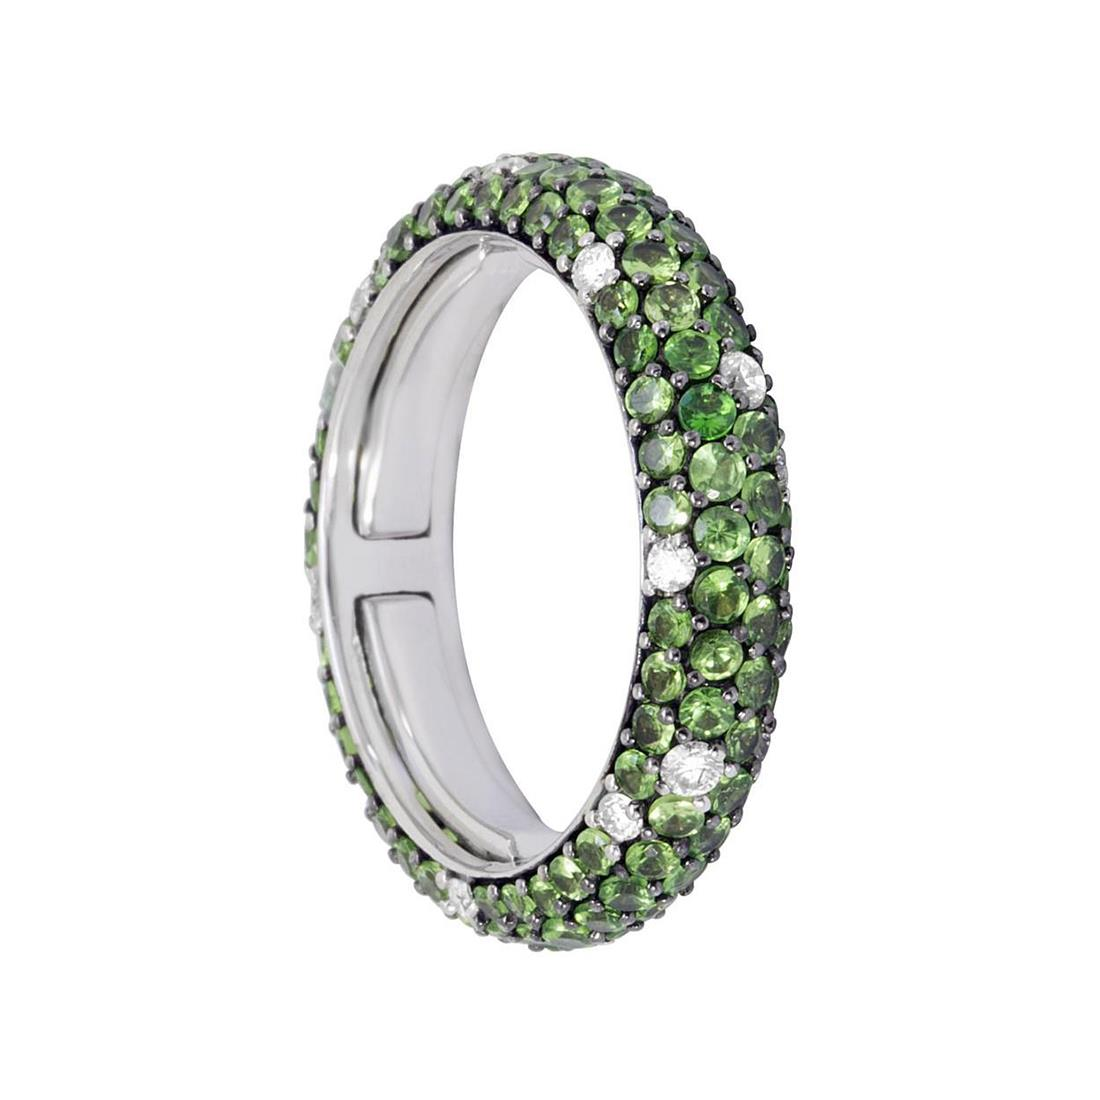 Anello eternity in oro bianco con diamanti ct 0.35 e tsavorite ct 2.60 - ALFIERI ST JOHN